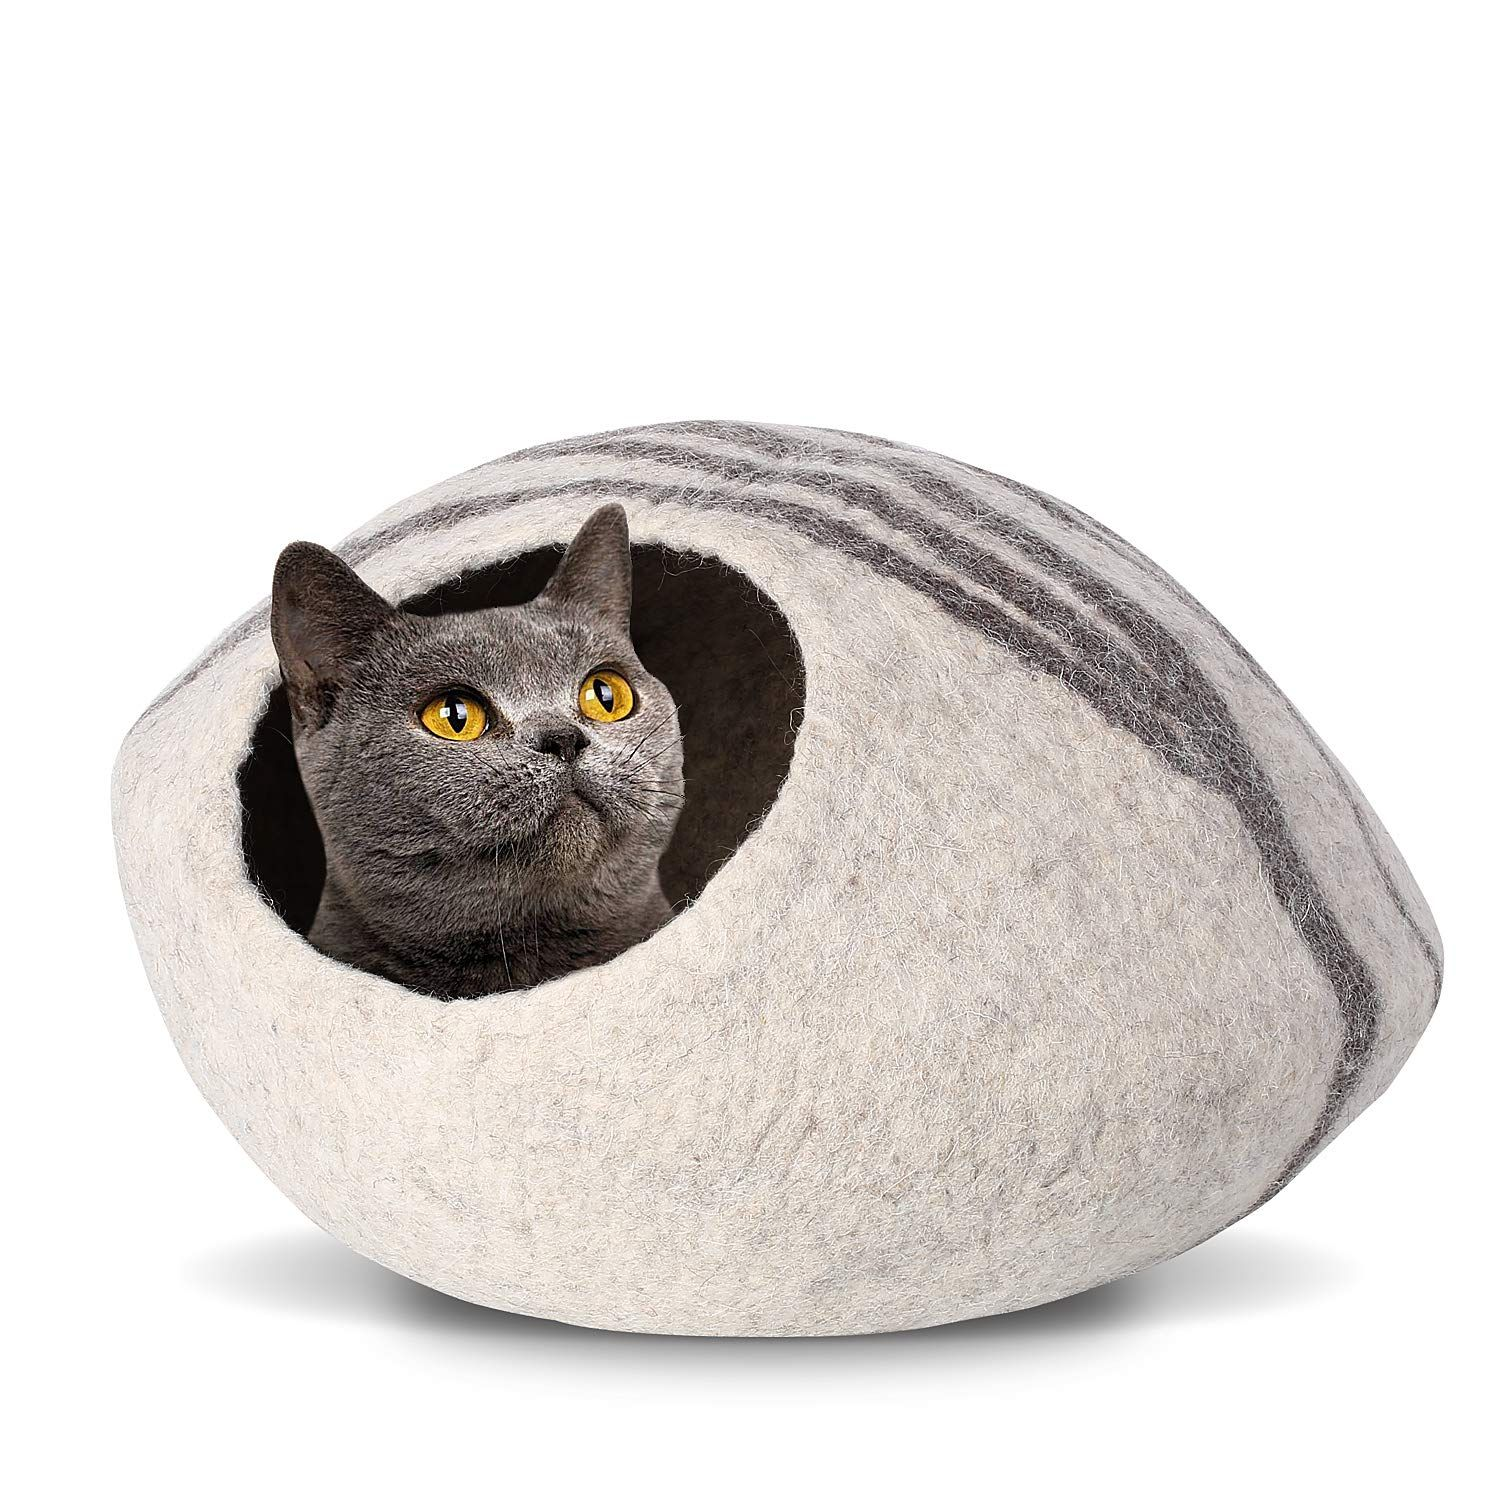 To the Cat Cave! Give your cat an exclusive lair to call